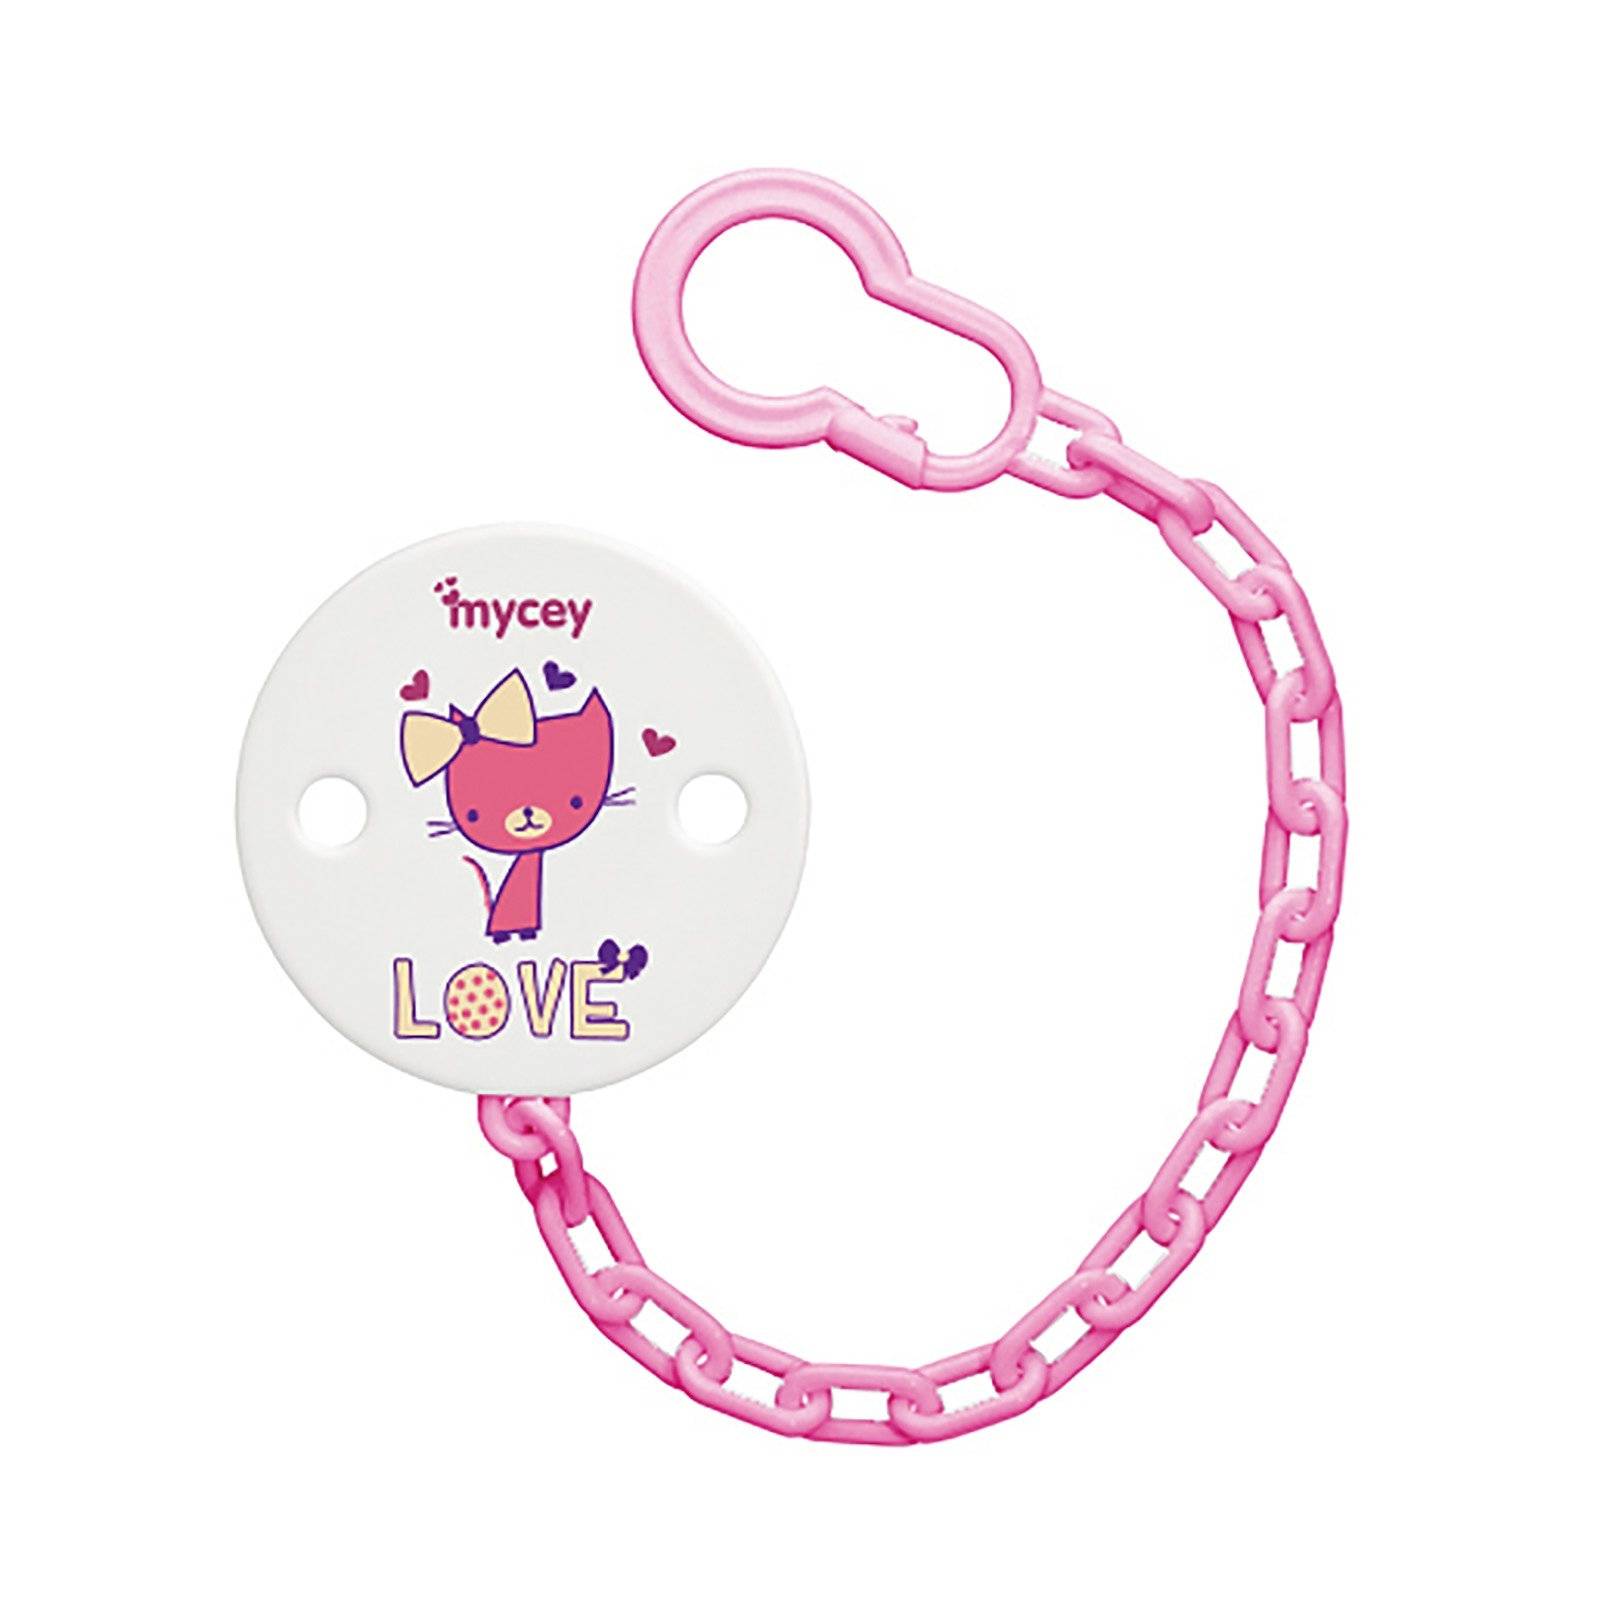 Ebebek Mycey Love Baby Soother Chain Holder